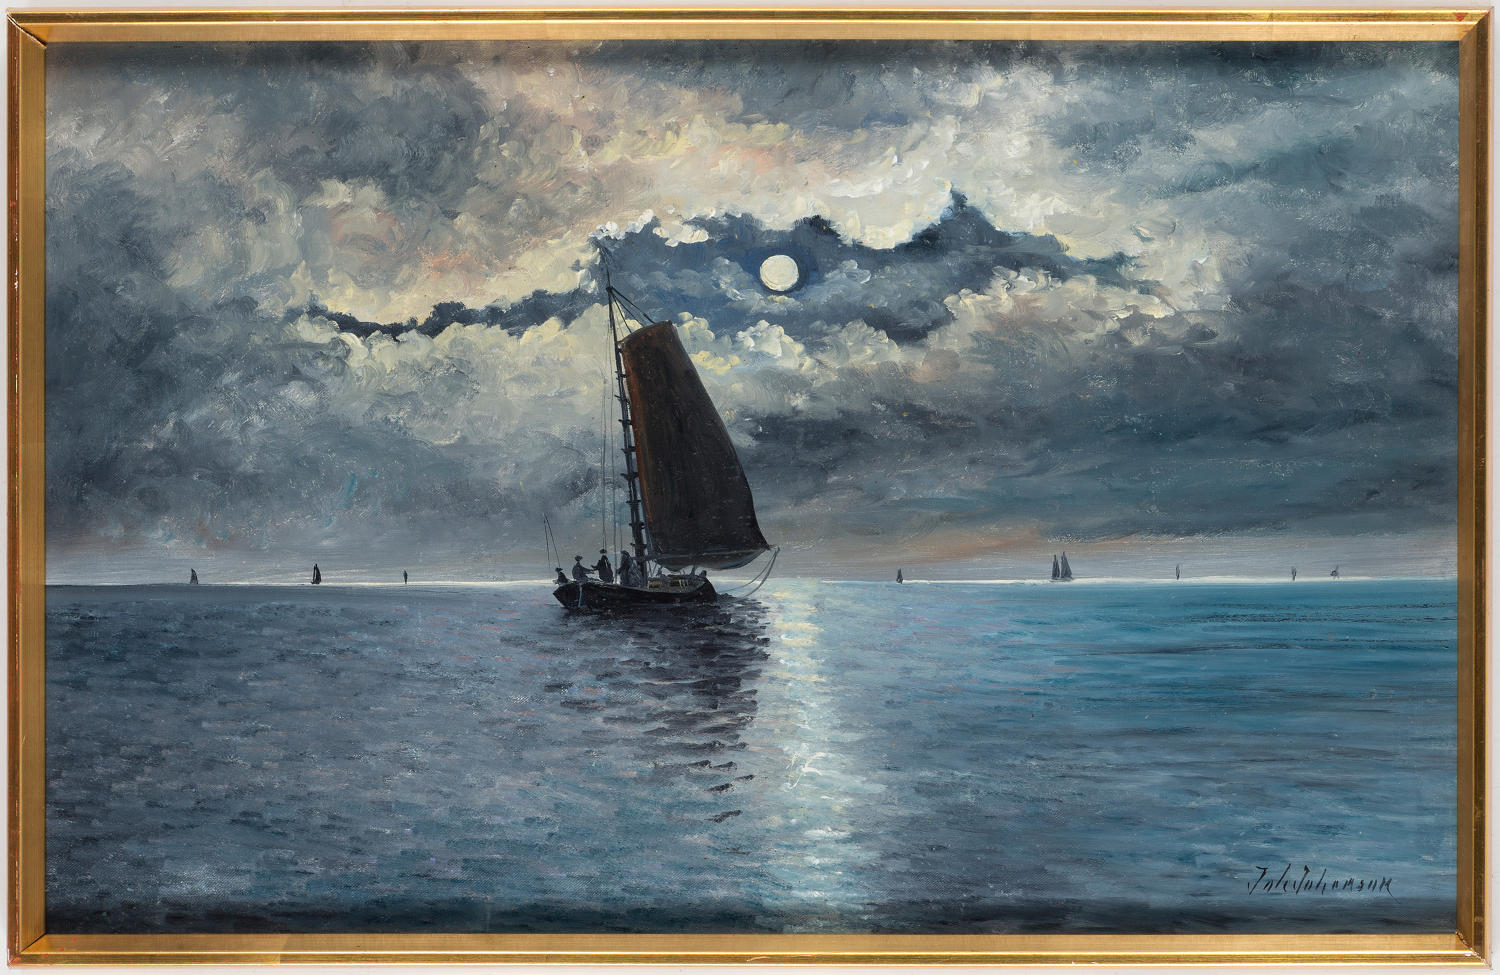 JOH JOHANSON, moon lit sailing boat at sea.